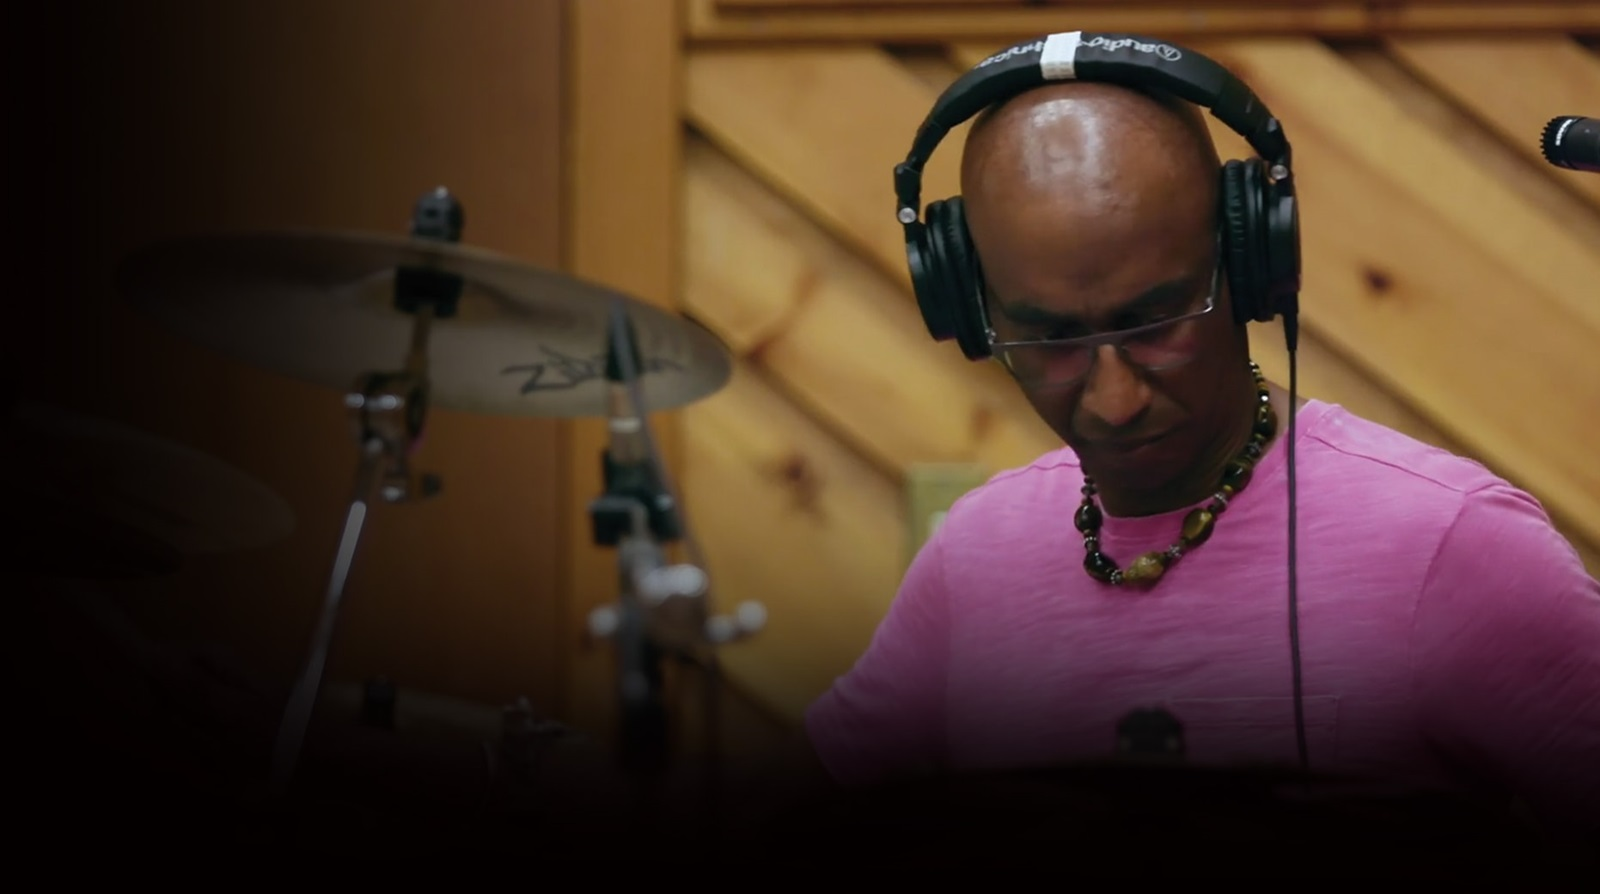 Omar Hakim recording with Pro Tools music making software